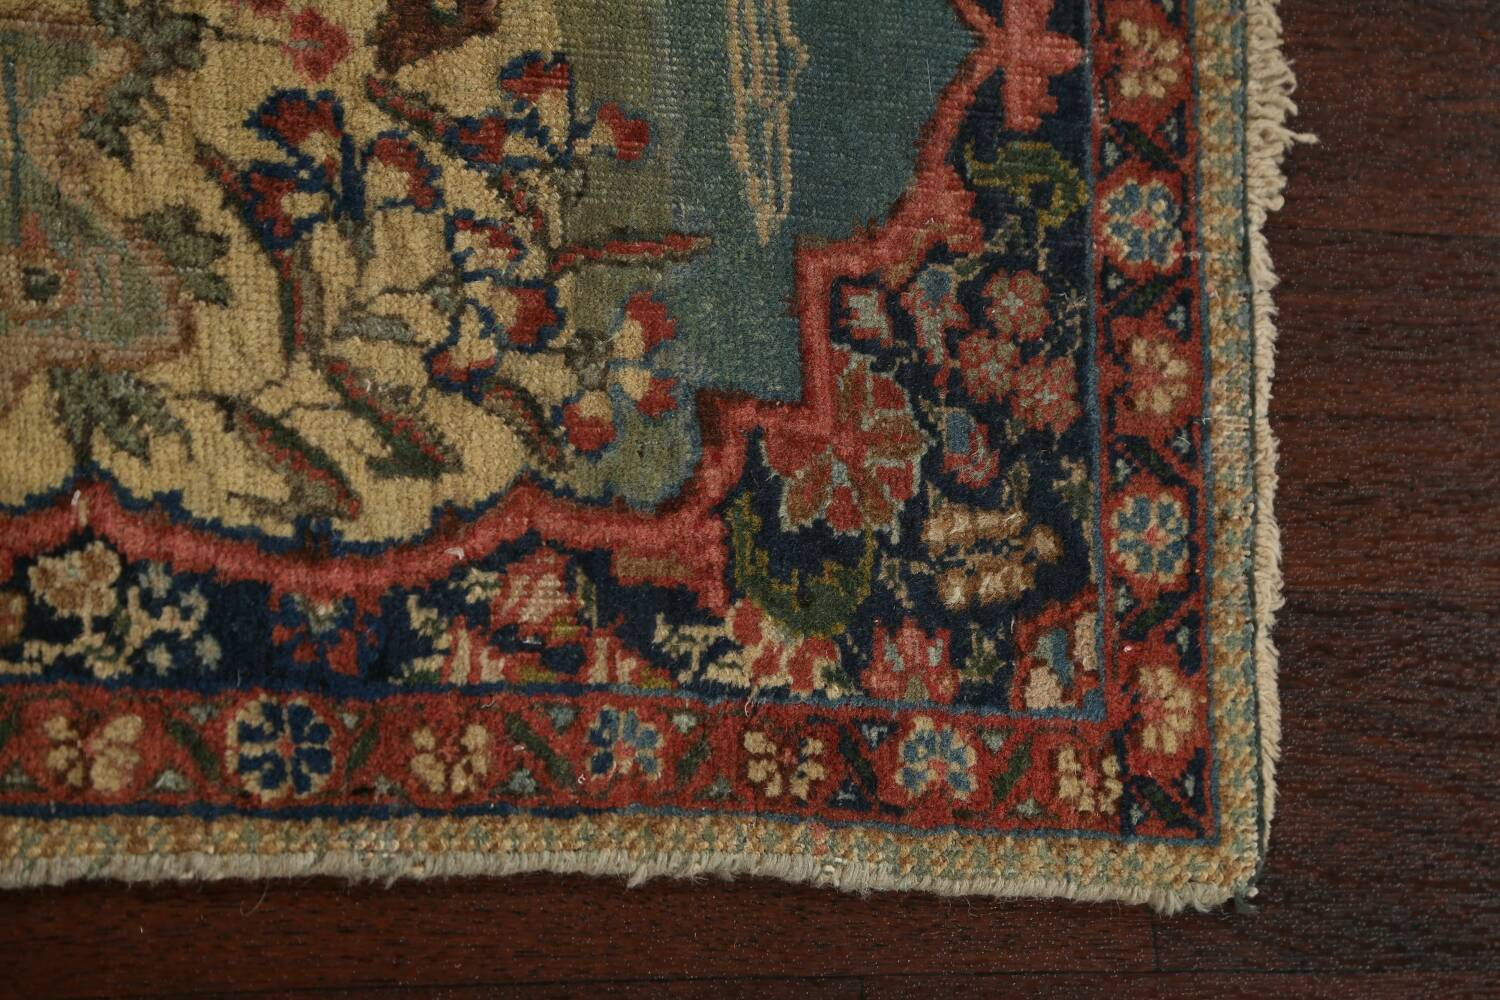 Vegetable Dye Pictorial Tabriz Persian Area Rug 2x2 Square image 13